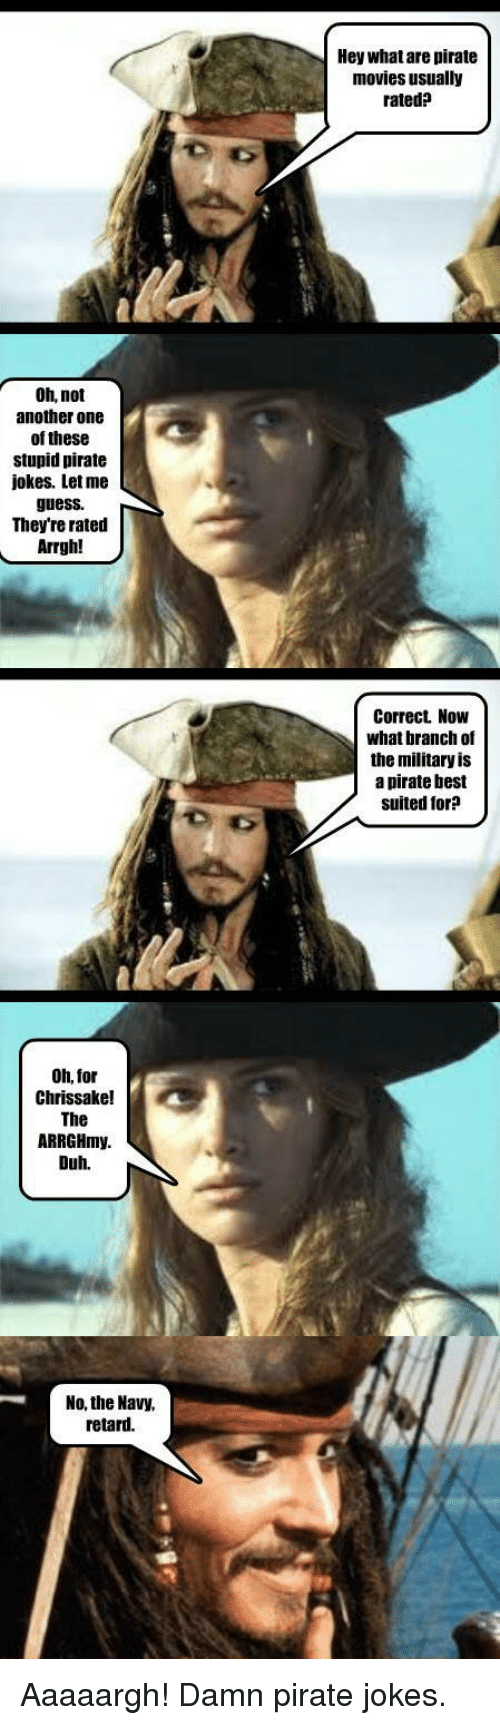 Jokes: A Oh, not  another one  of these  stupid pirate  jokes. Let me  guess.  They're rated  Arrgh  Oh, for  chrissake!  The  ARRGHmy.  Duh.  No, the Navy,  retard.  Hey what are pirate  movies usually  rated?  Correct. Now  what branch of  the military is  a pirate best  suited for Aaaaargh! Damn pirate jokes.